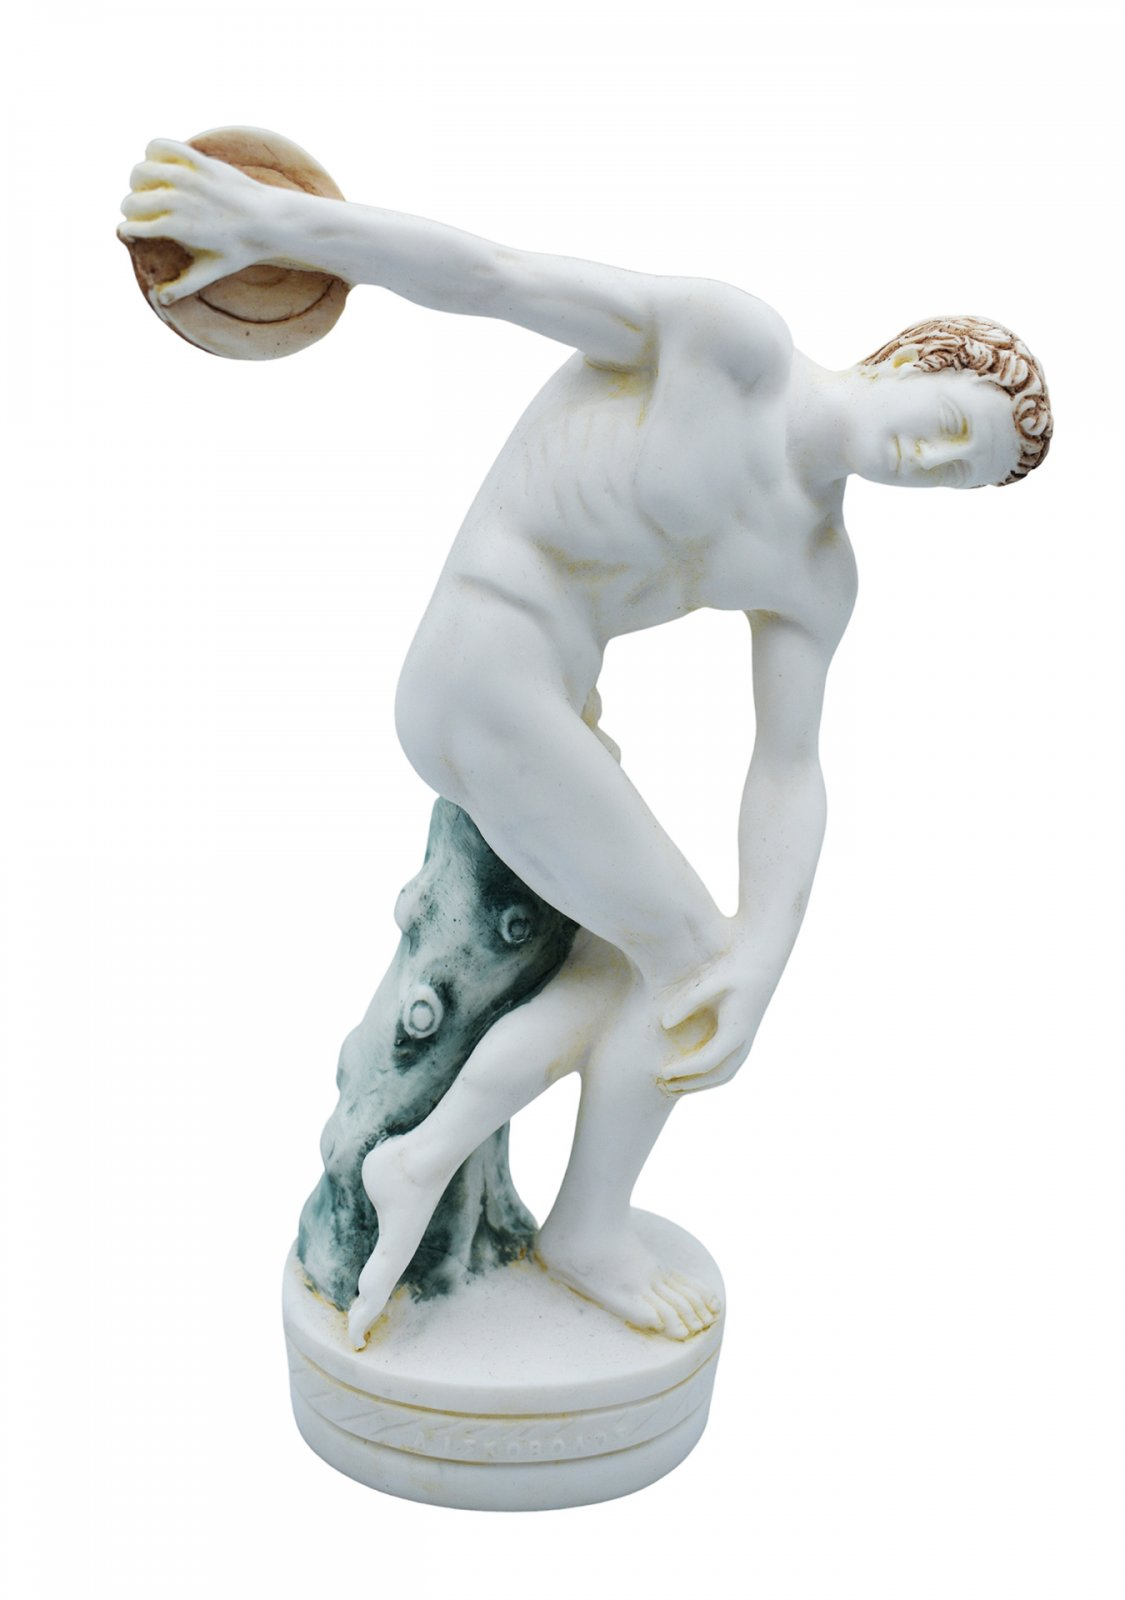 Discus thrower, Discobolus of Myron, greek alabaster statue with color